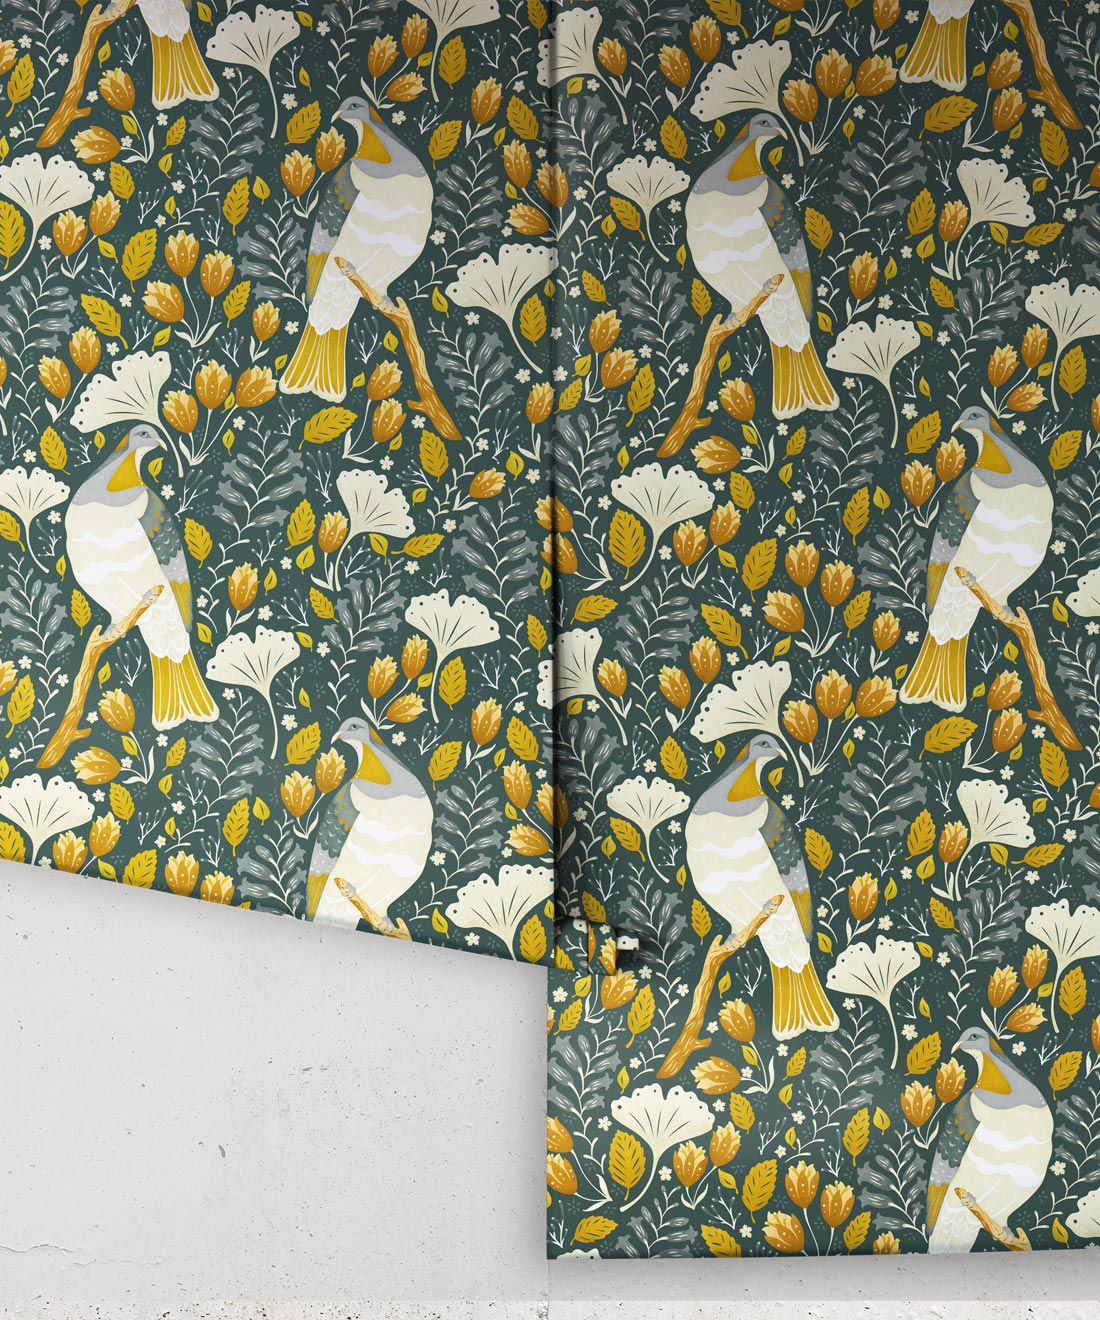 Kereru Wallpaper • Wood Pigeon• Bird Wallpaper • Mustard Green Wallpaper Rolls